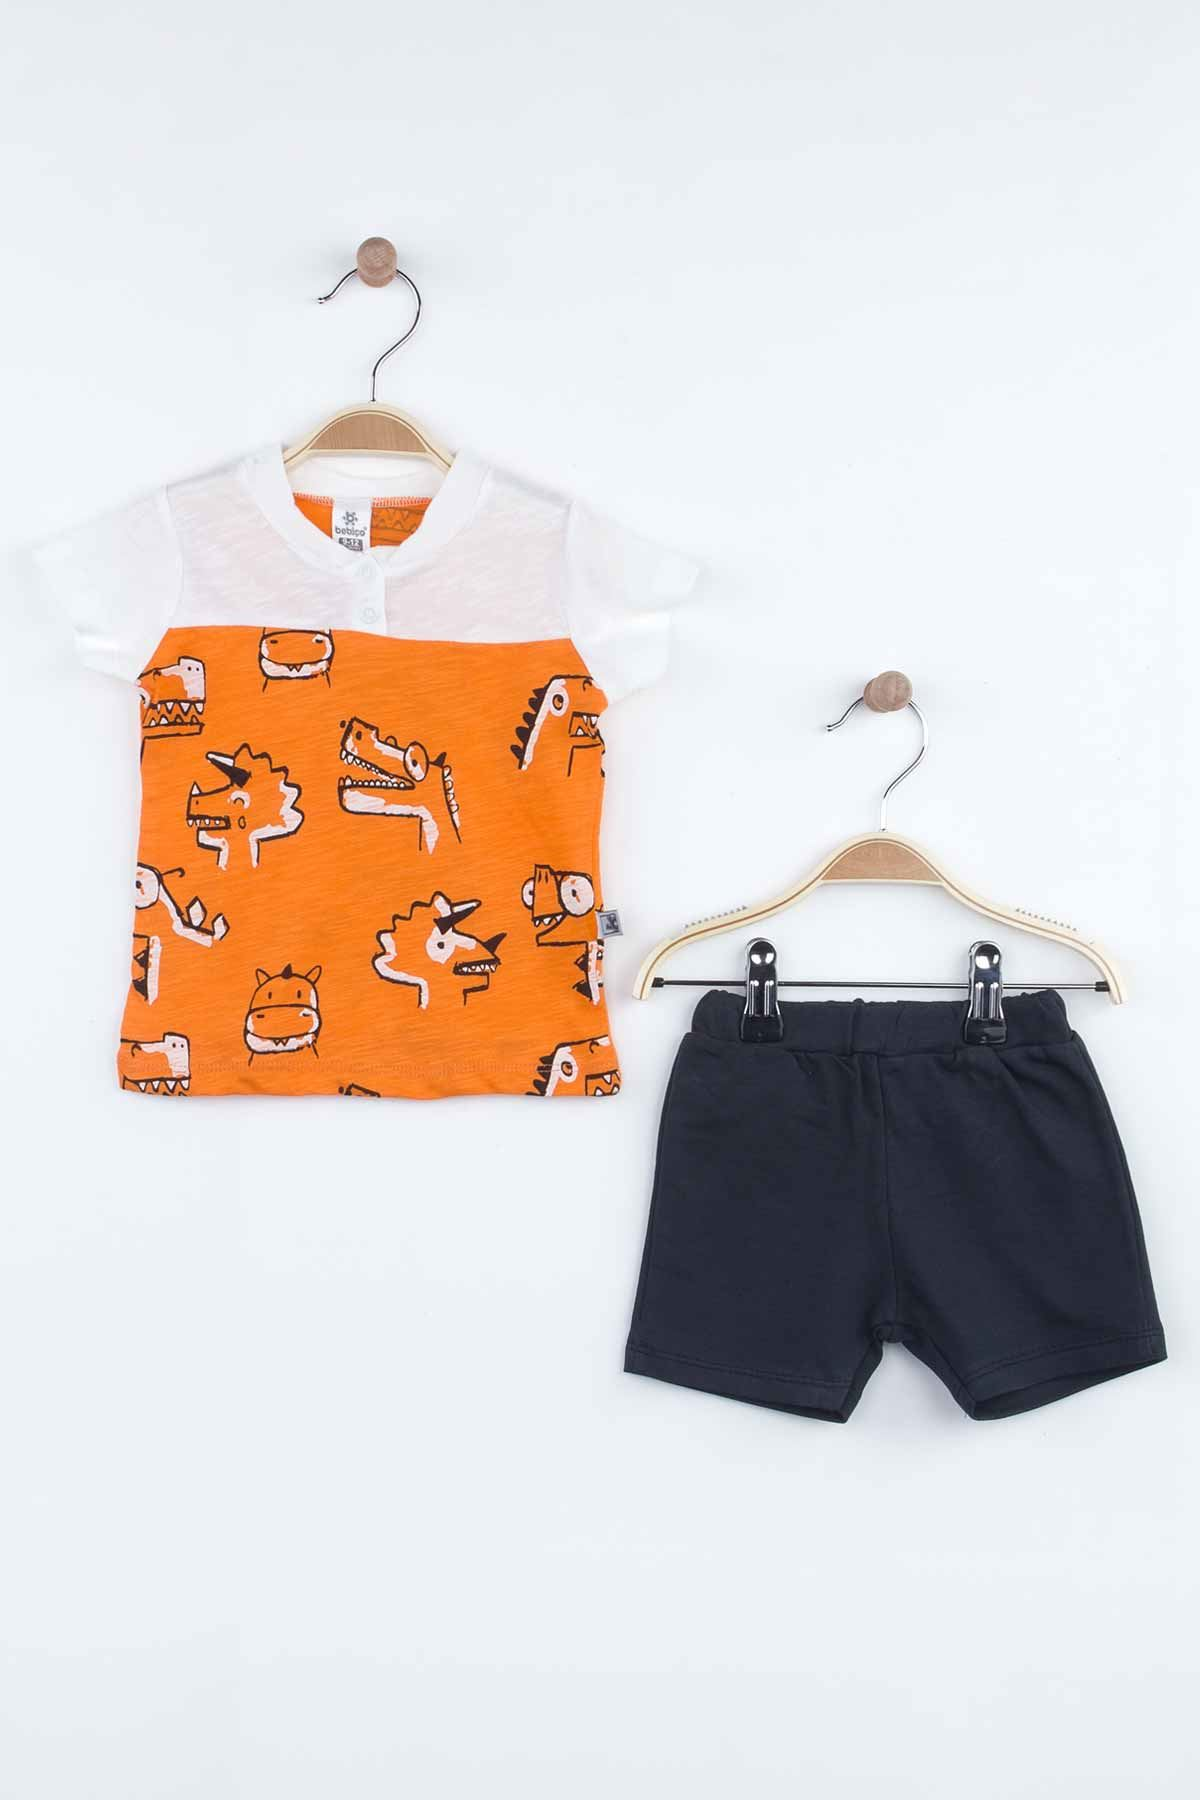 Orange Baby Boy Shorts Set Summer 2021 Fashion Babies Boys Outfit Cotton Casual Vacation Use Clothing Models